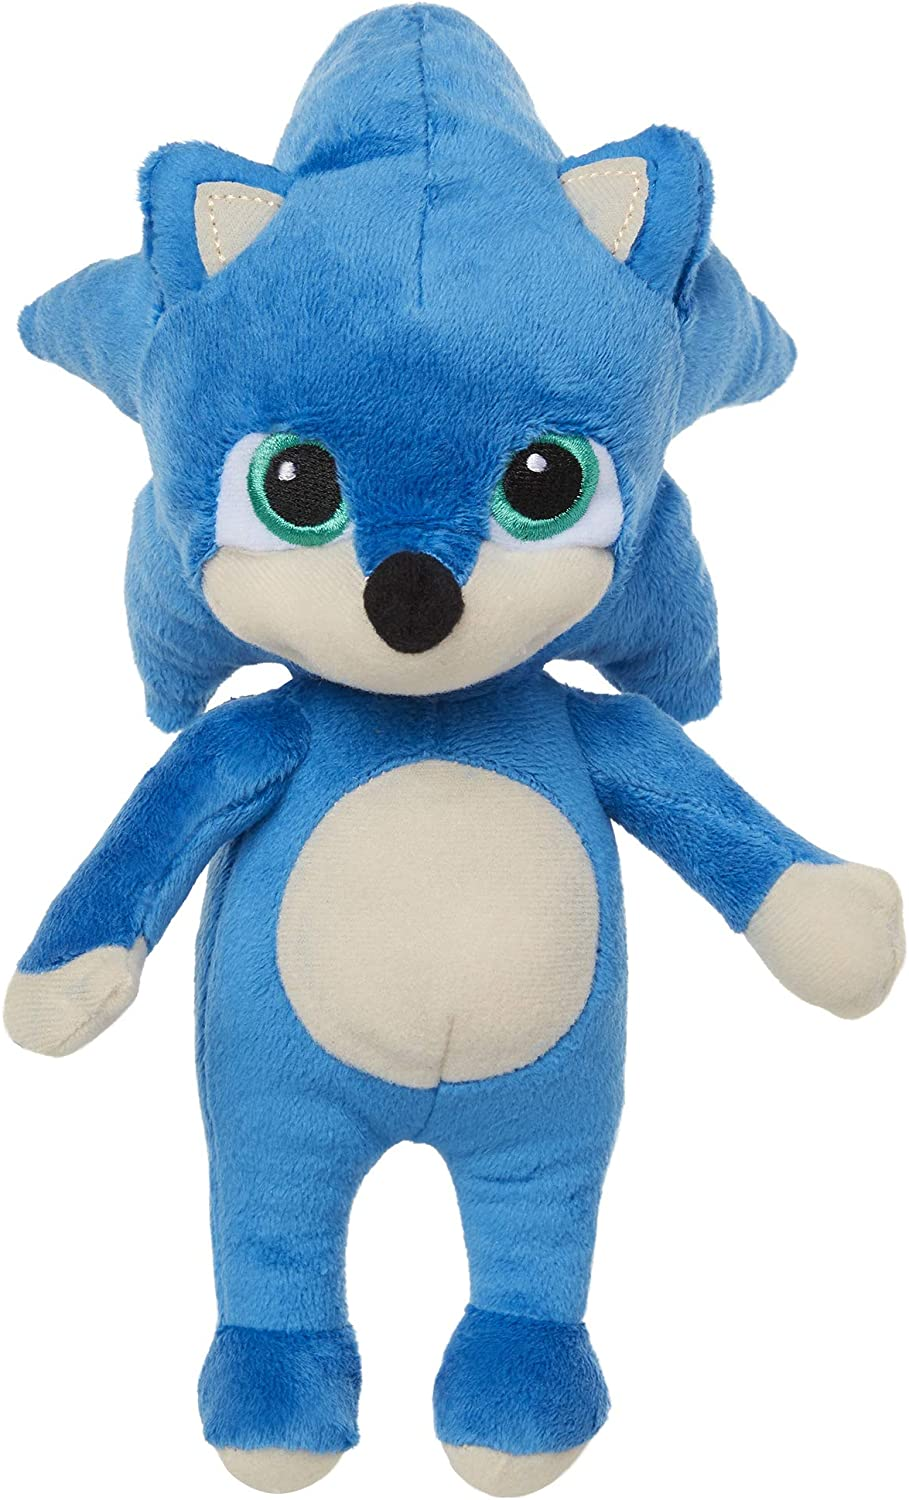 "SONIC THE HEDGEHOG 30CM PLUSH SOFT TOY  BRAND NEW WITH TAGS 12/"" FROM BIRTH"